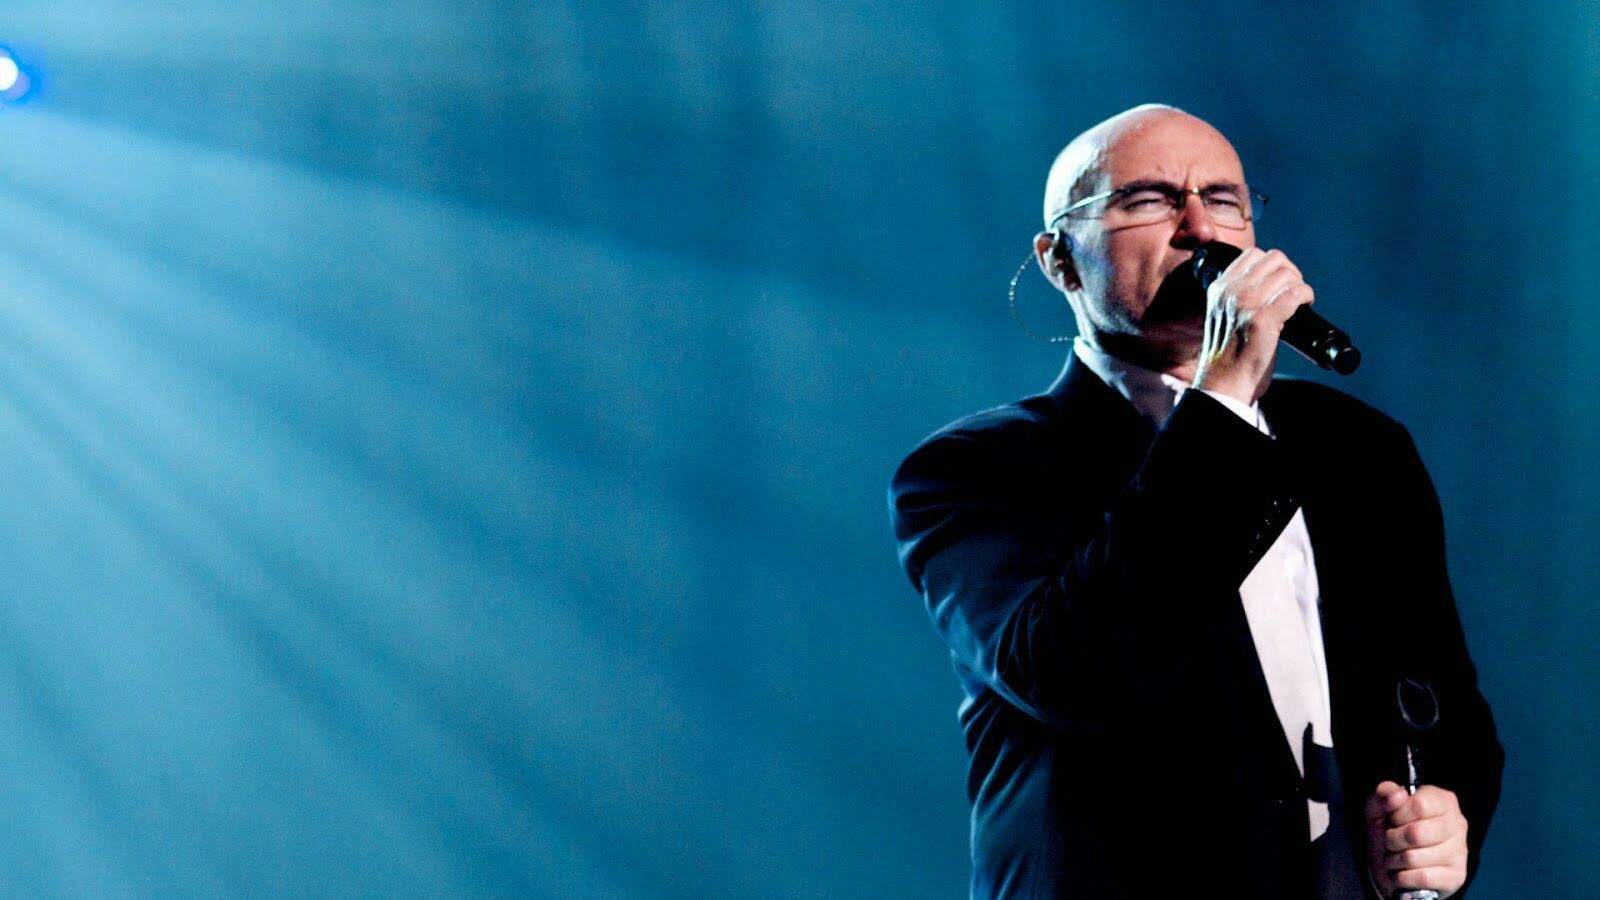 Download Top 10 Best Phil Collins Song With High Quality ...